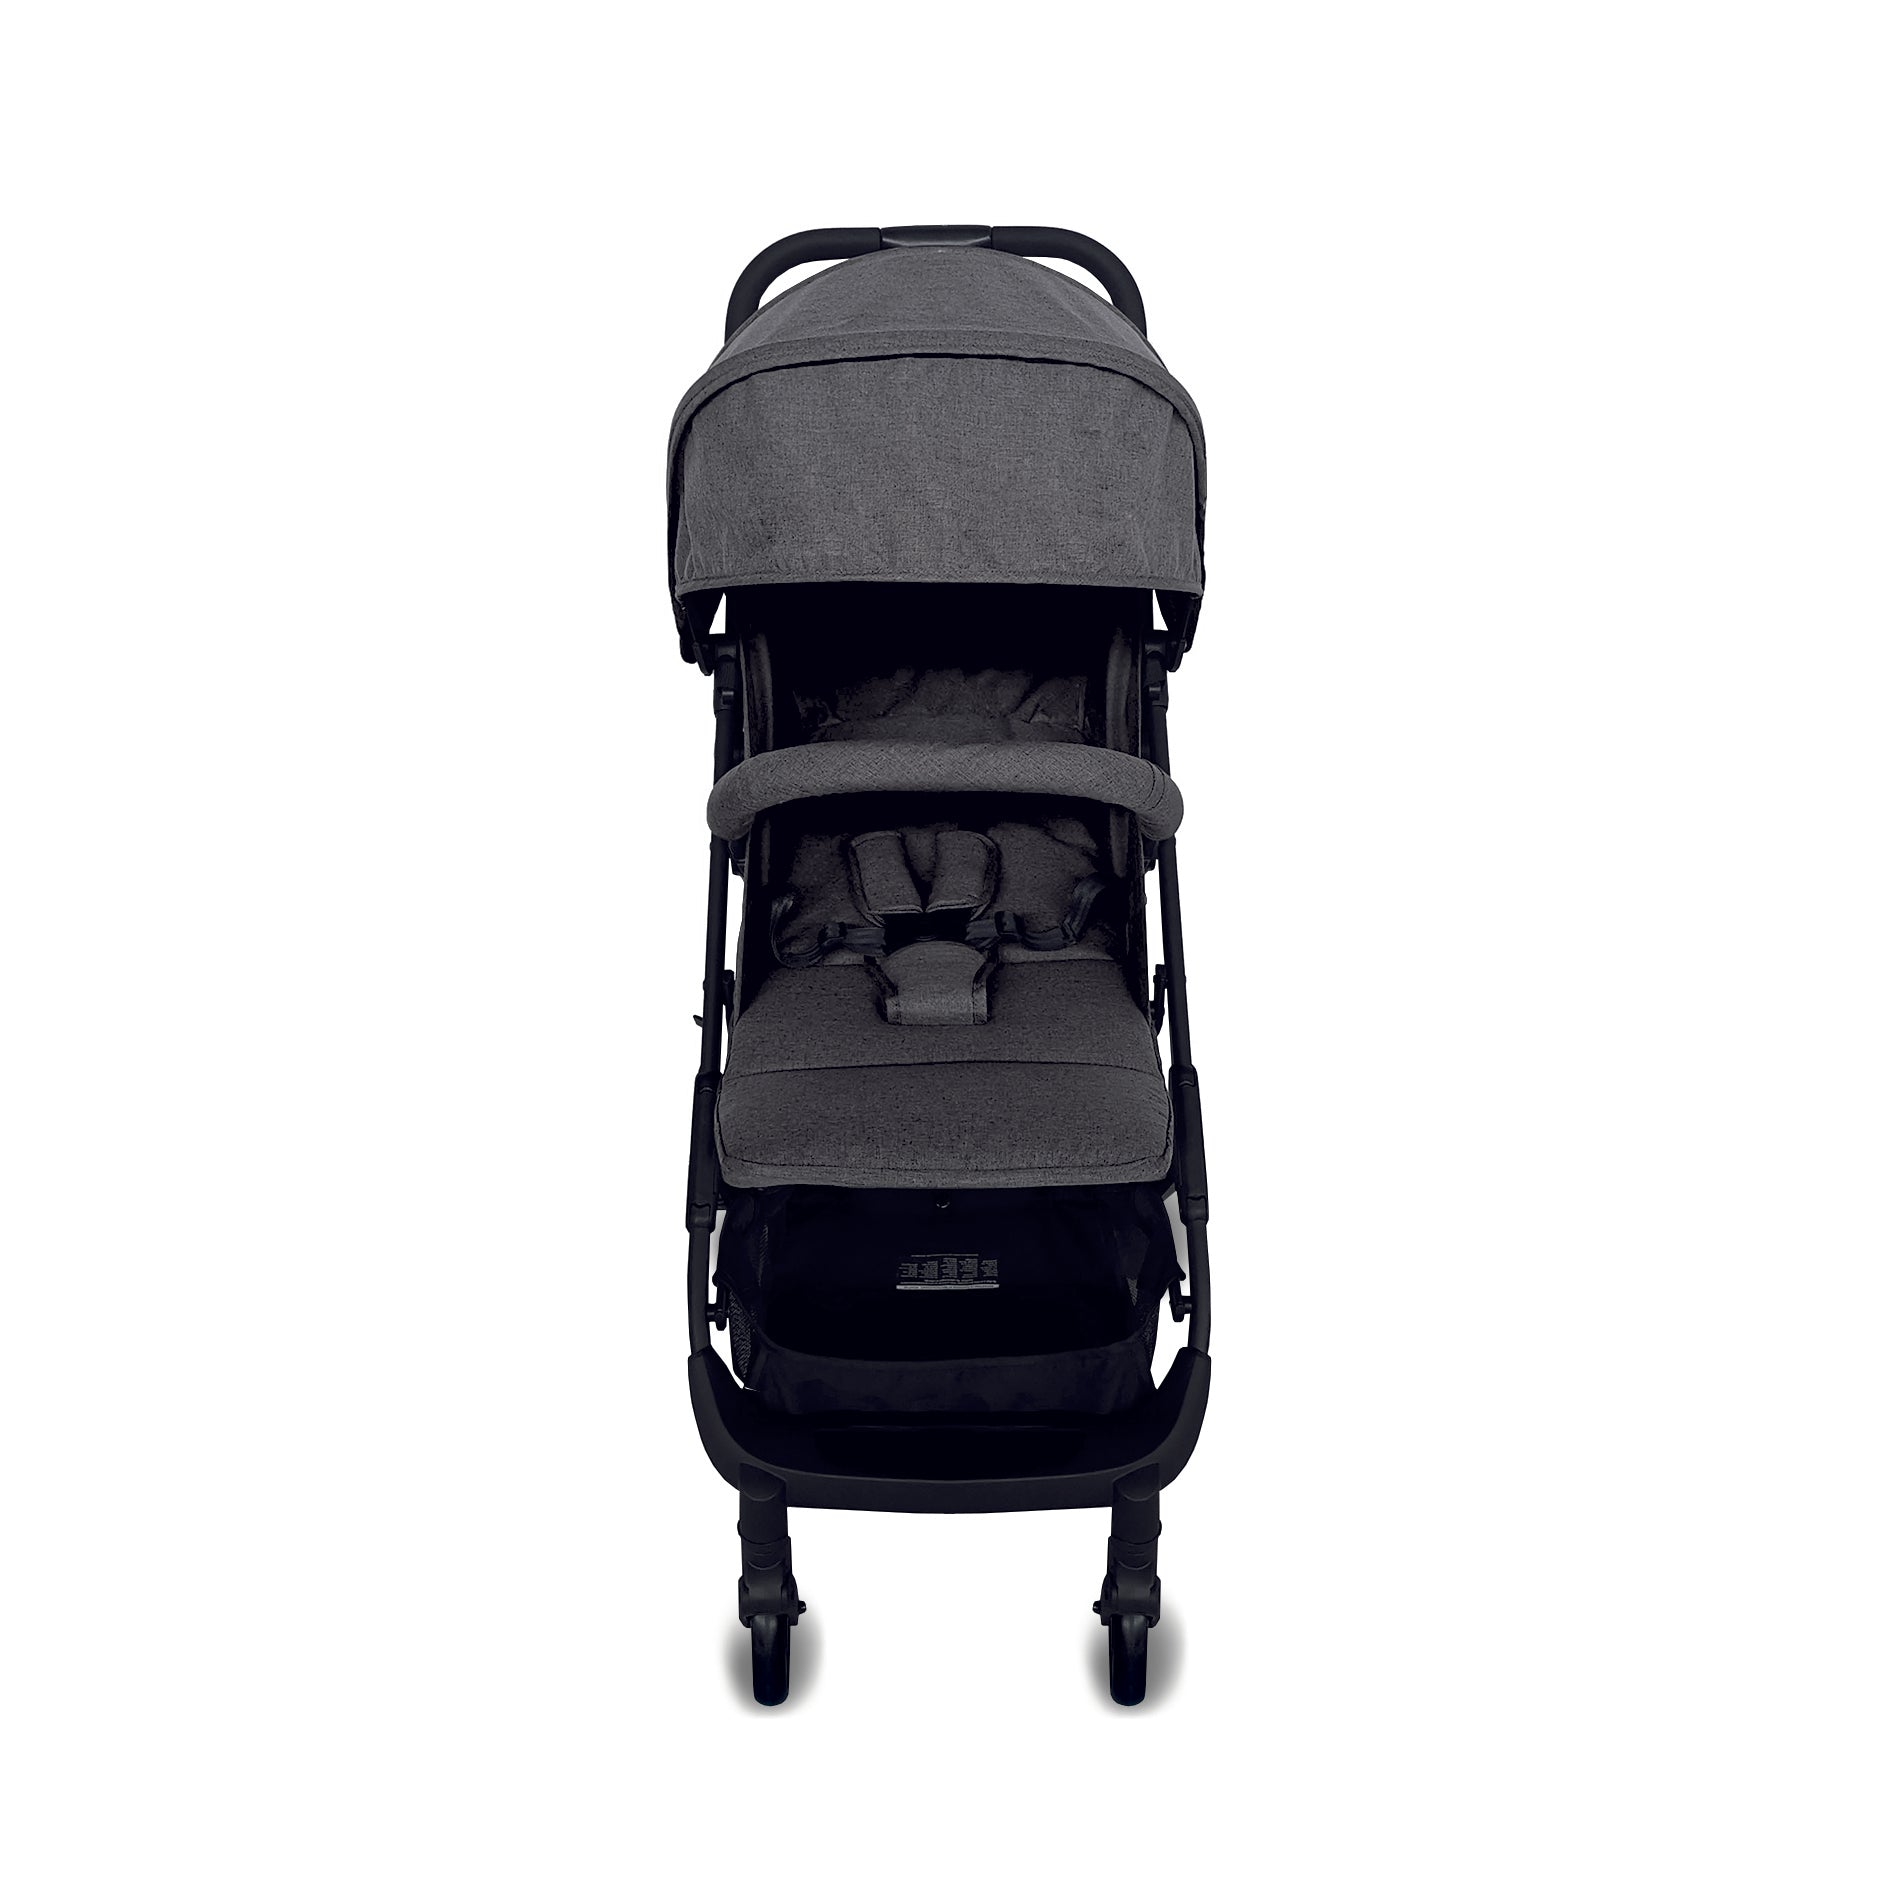 Silla de paseo Bbes One Urban Grey